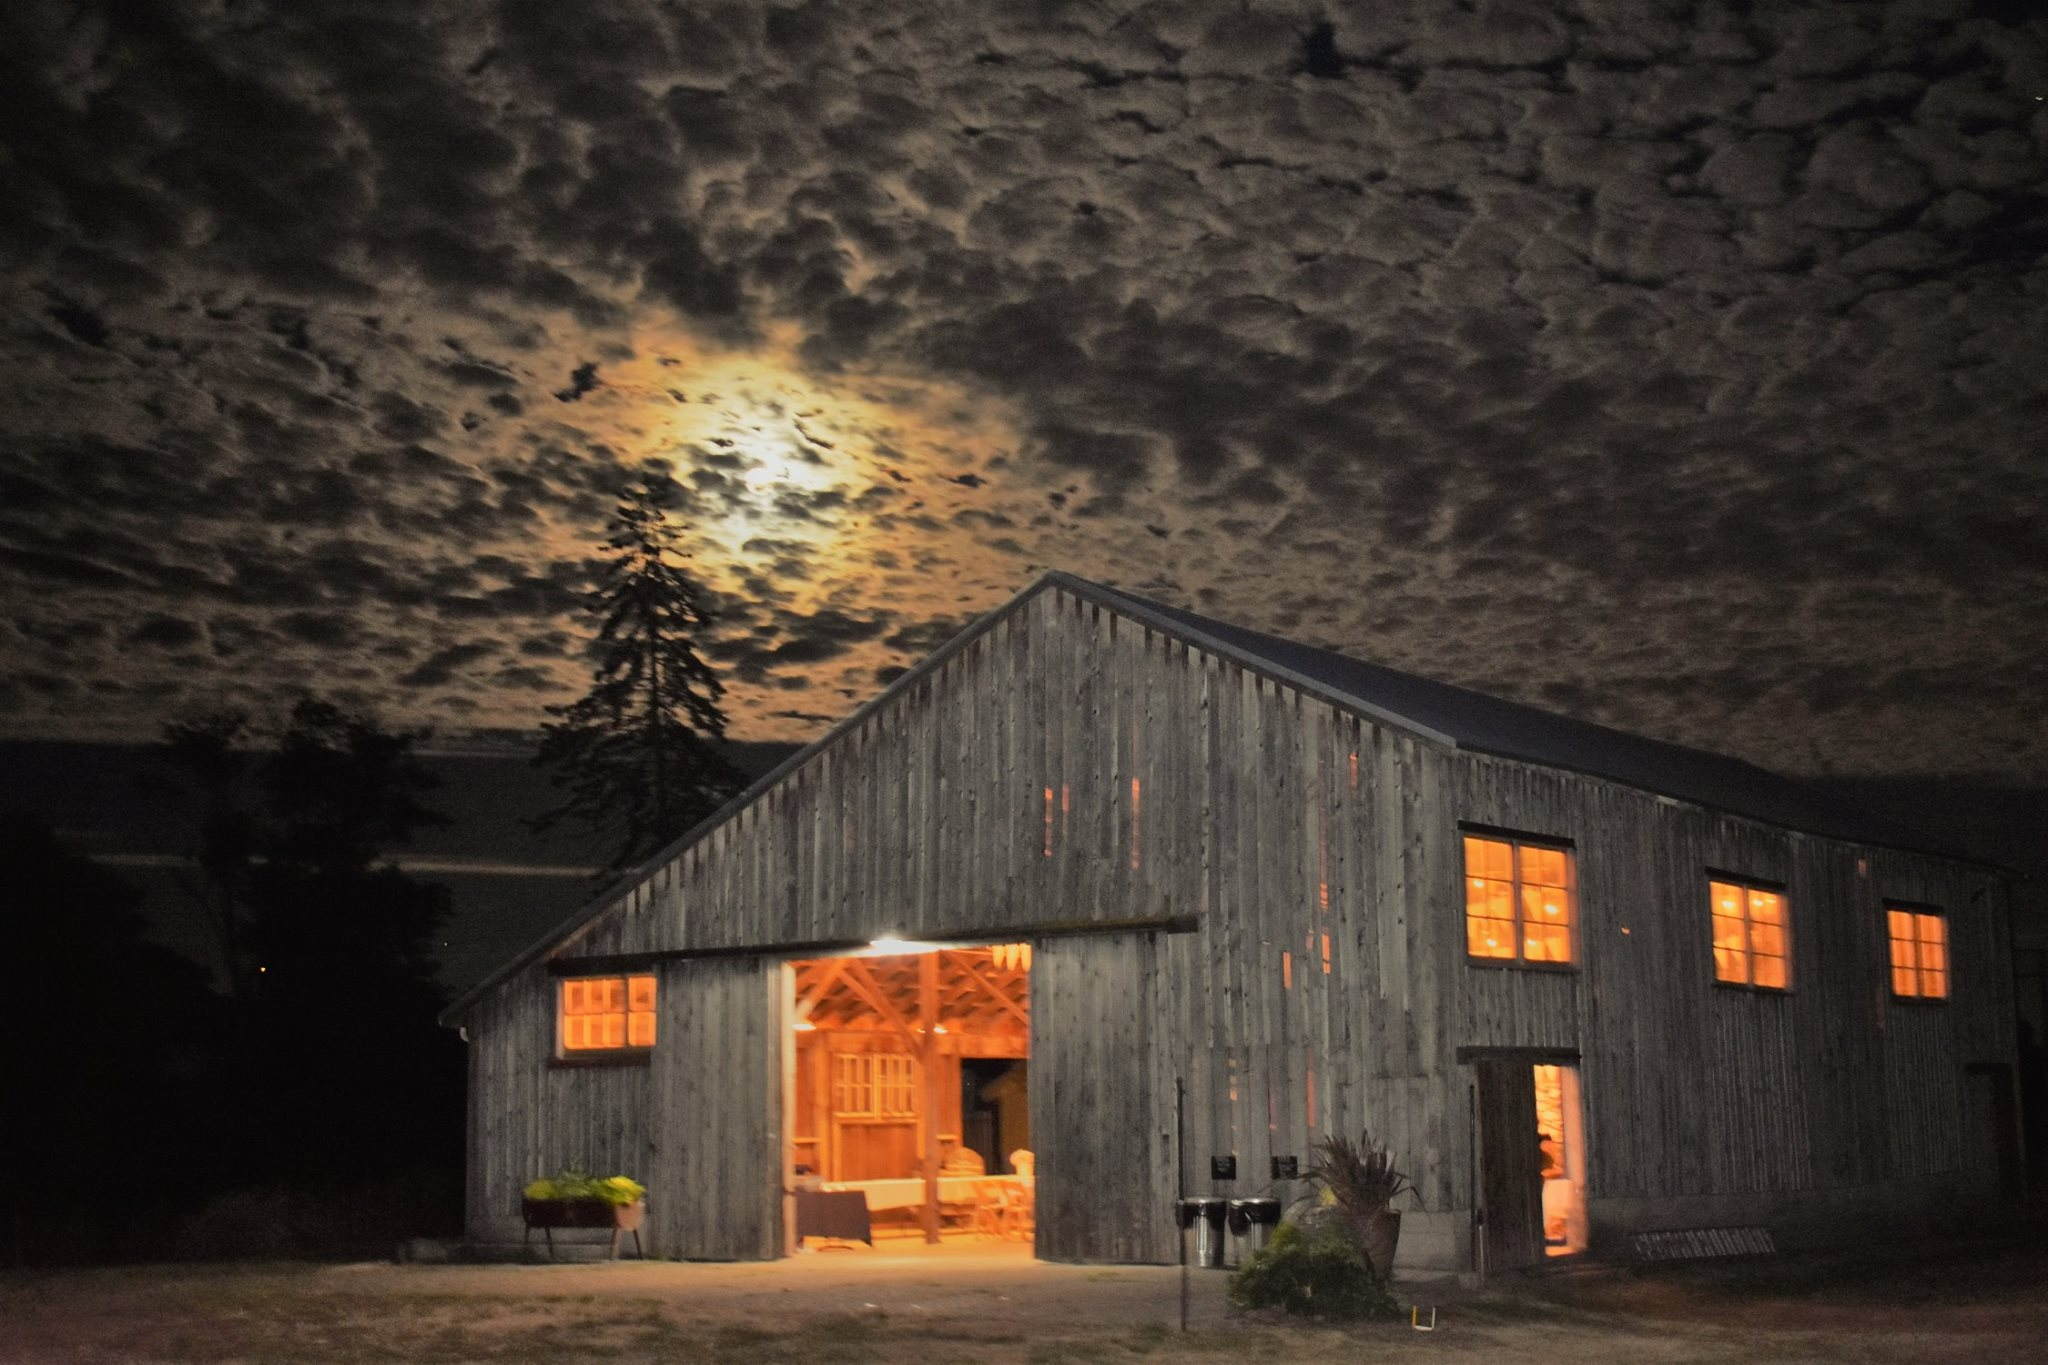 the event barn at night, a full buck moon is seen through a unique cloud covering